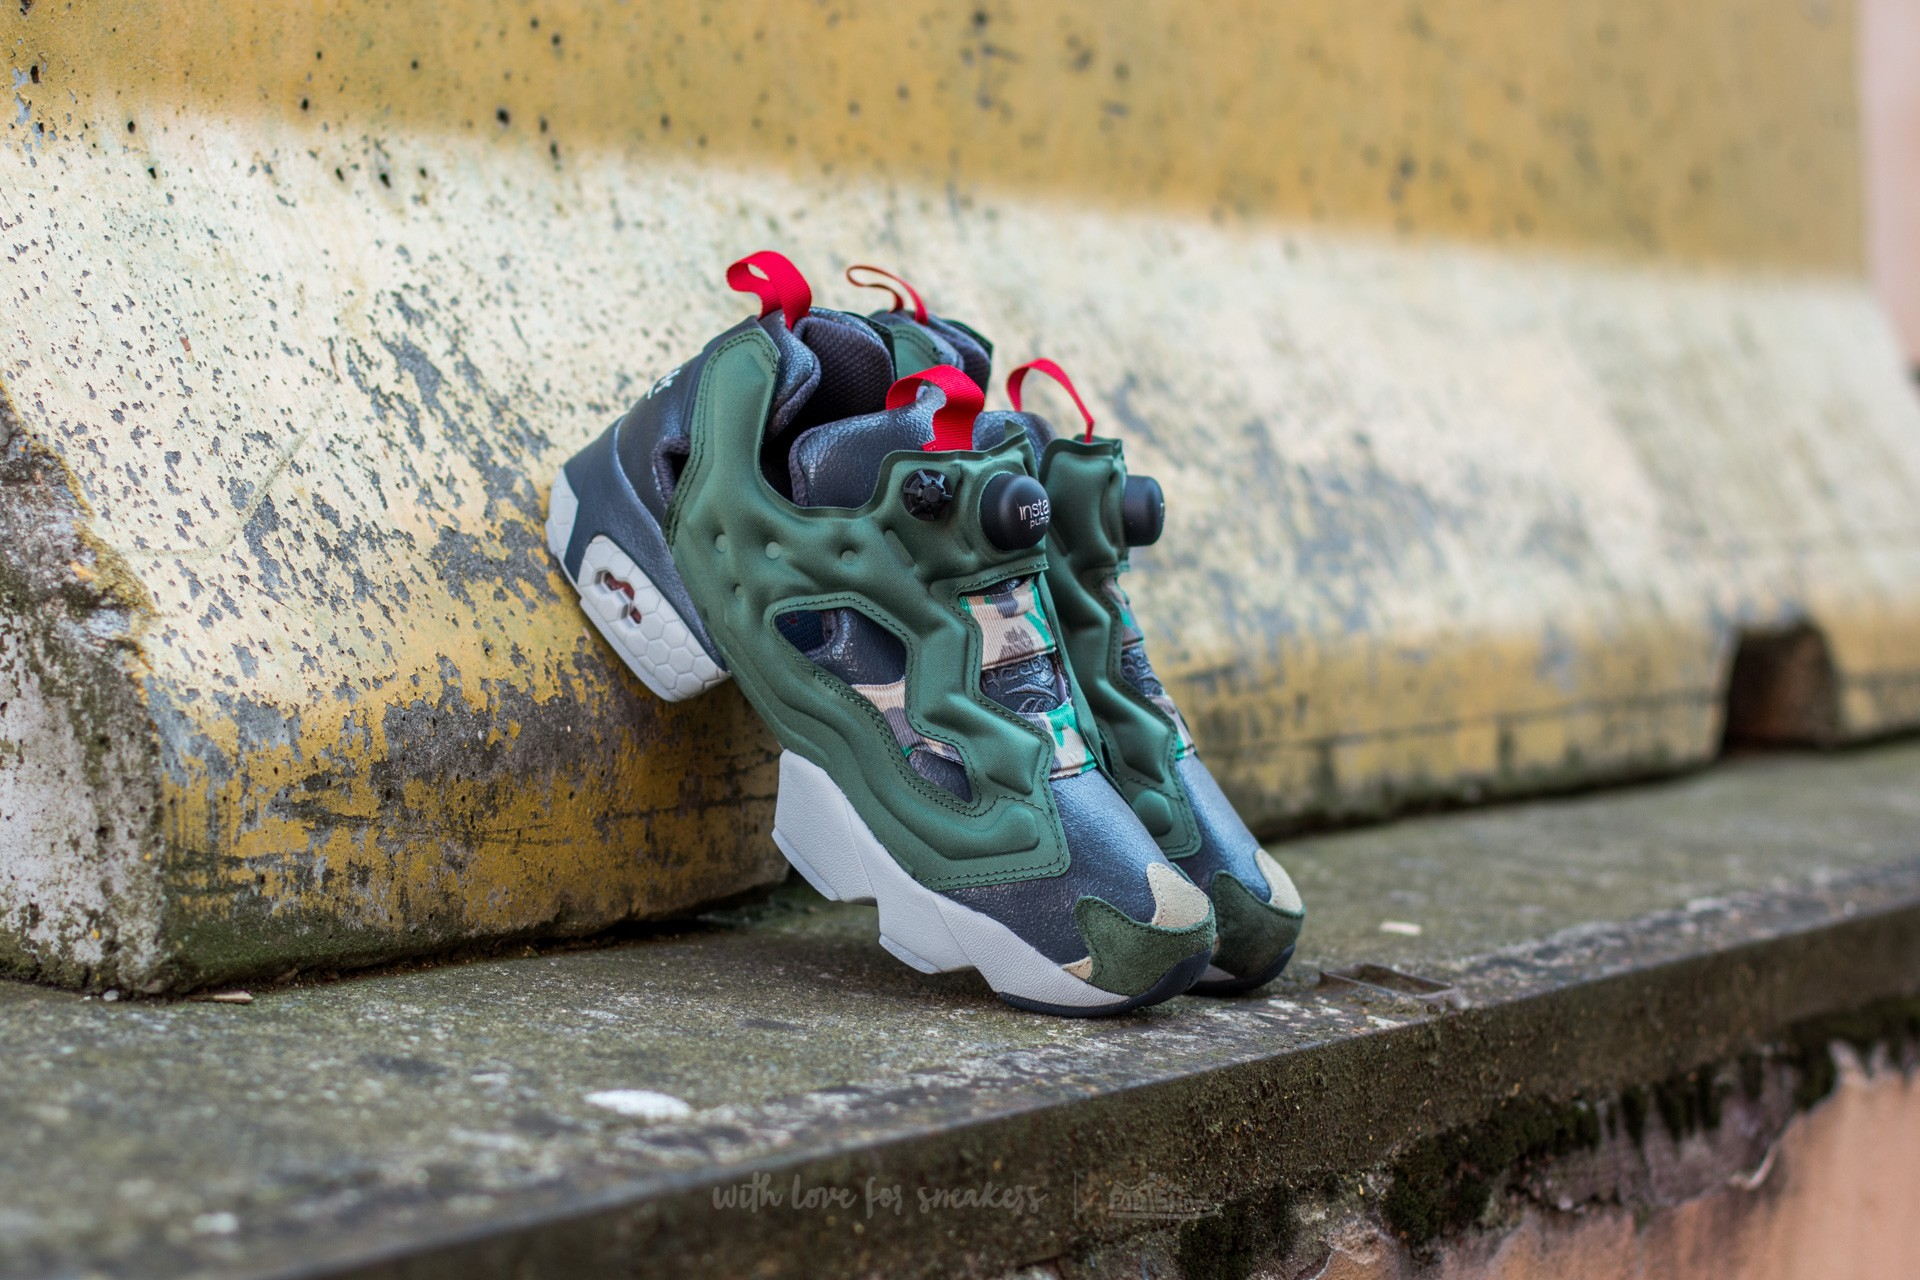 Reebok Instapump Fury OG Villain Pack Black/ Green/ Grey